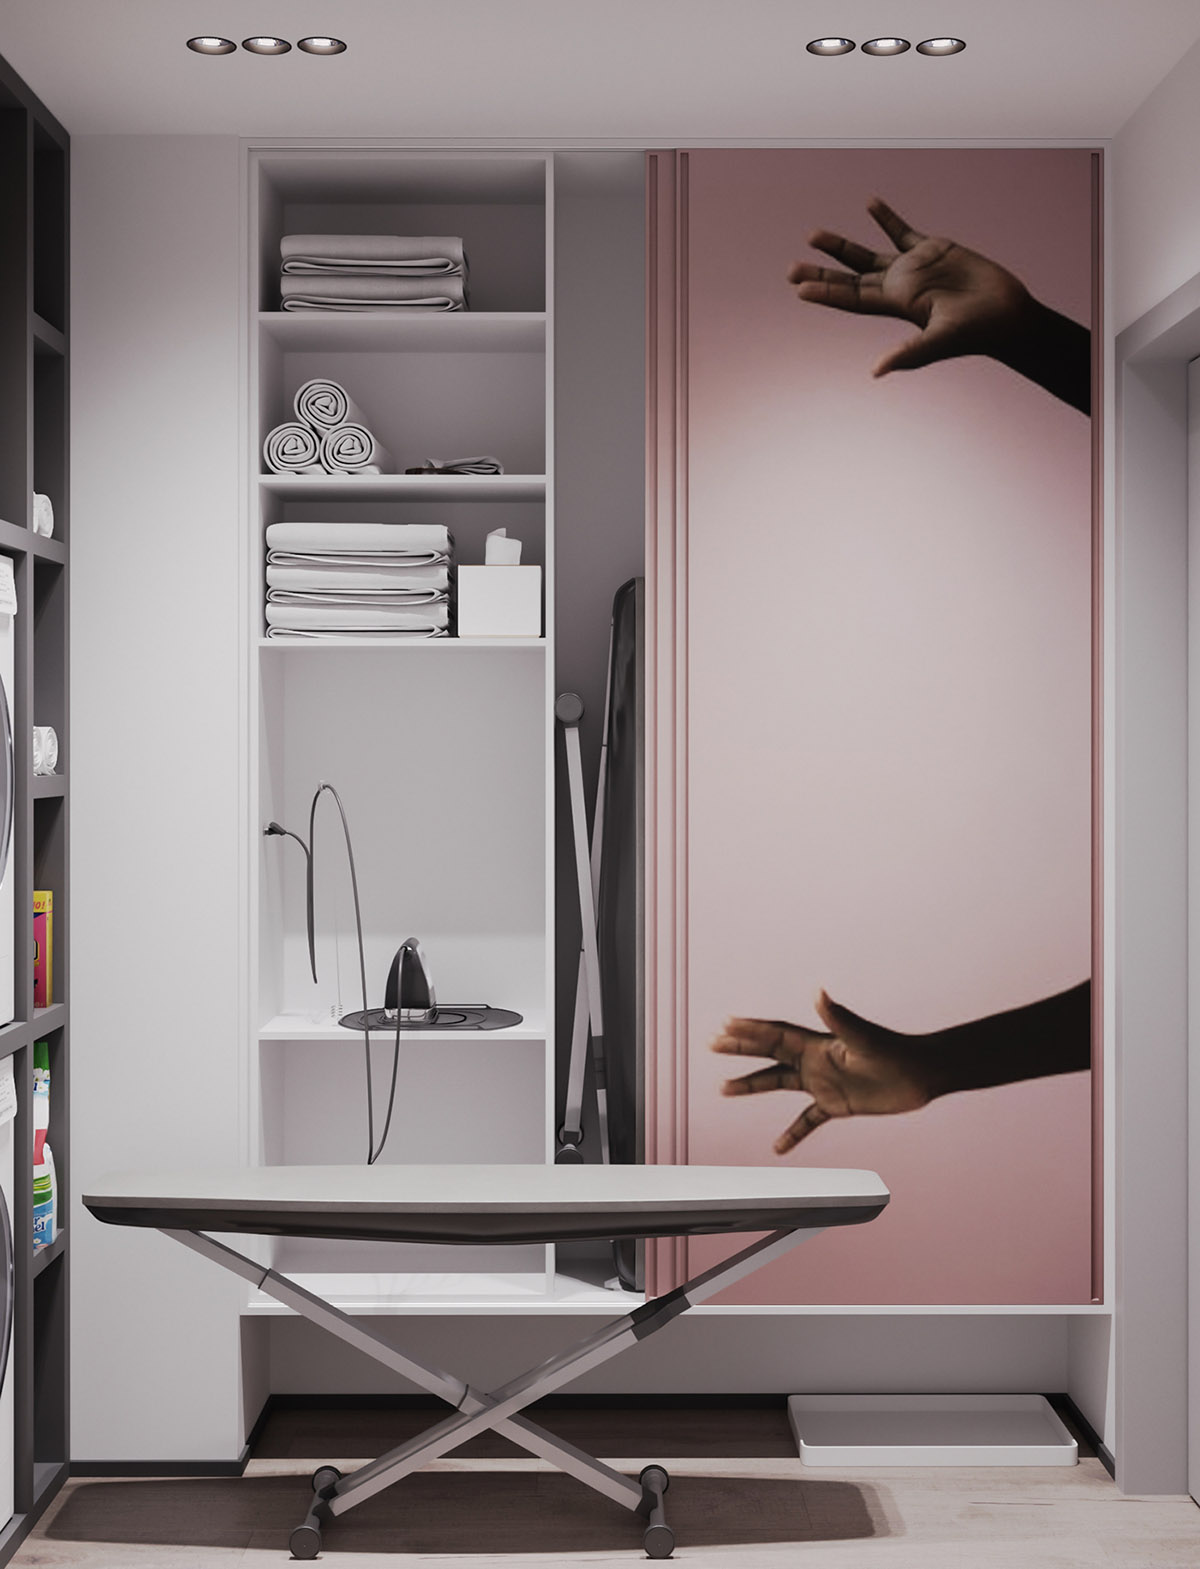 A Striking Example Of Interior Design Using Pink And Grey images 16